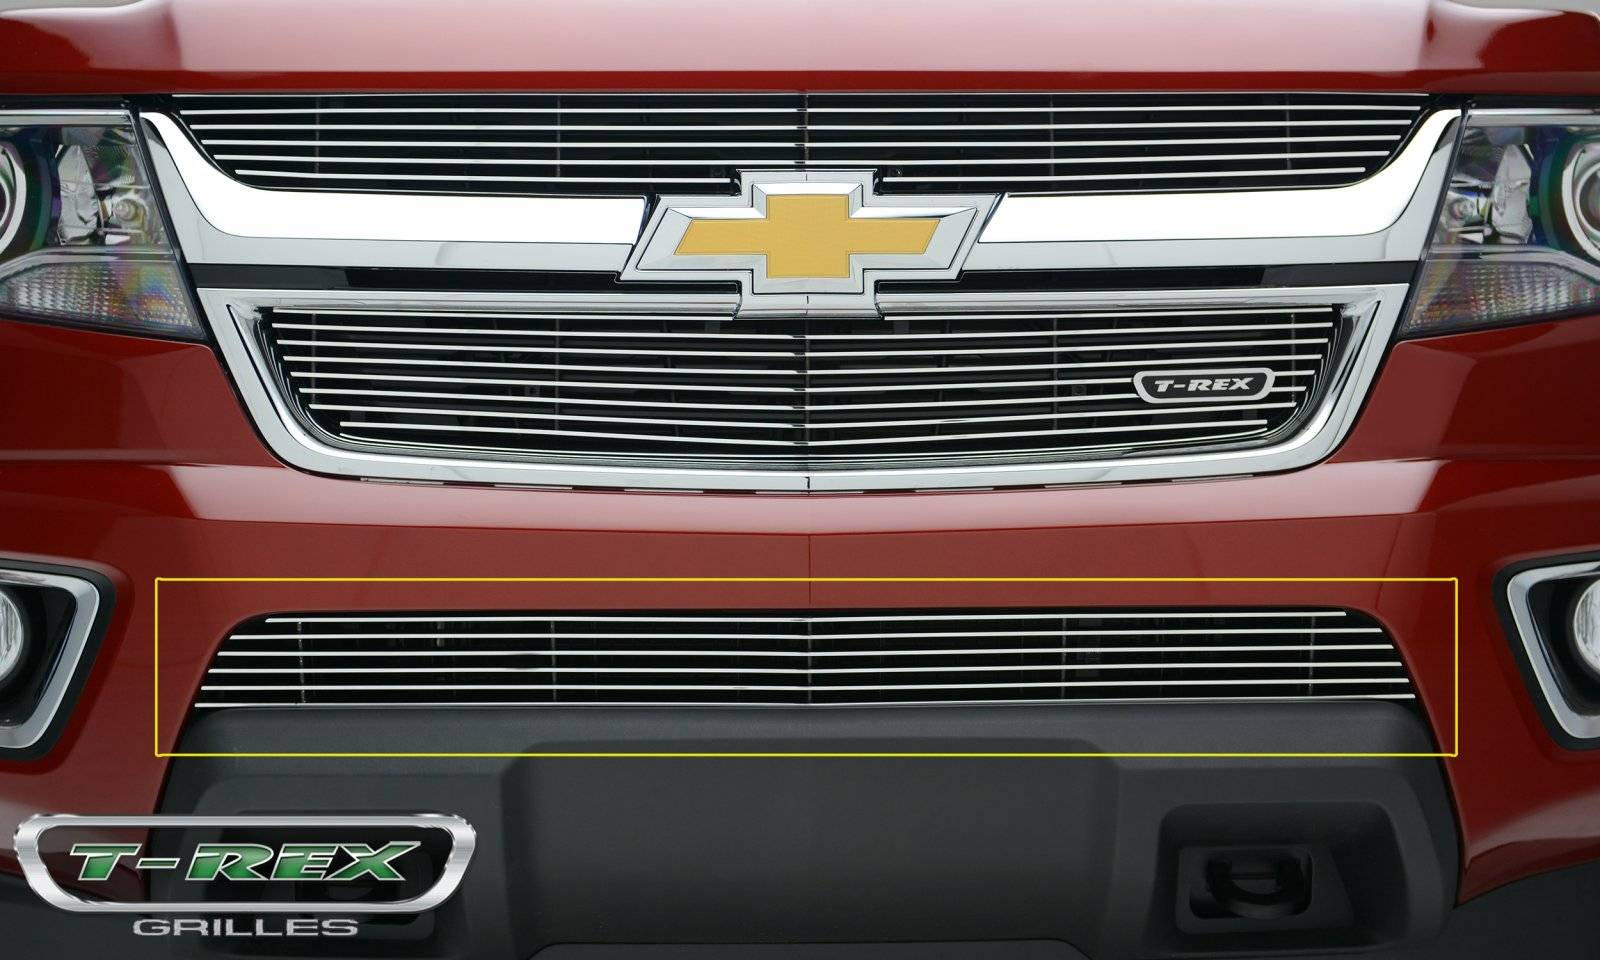 Chevrolet Colorado - Billet Series - Bumper Grille - Overlay with Polished Aluminum Face - Pt # 25267